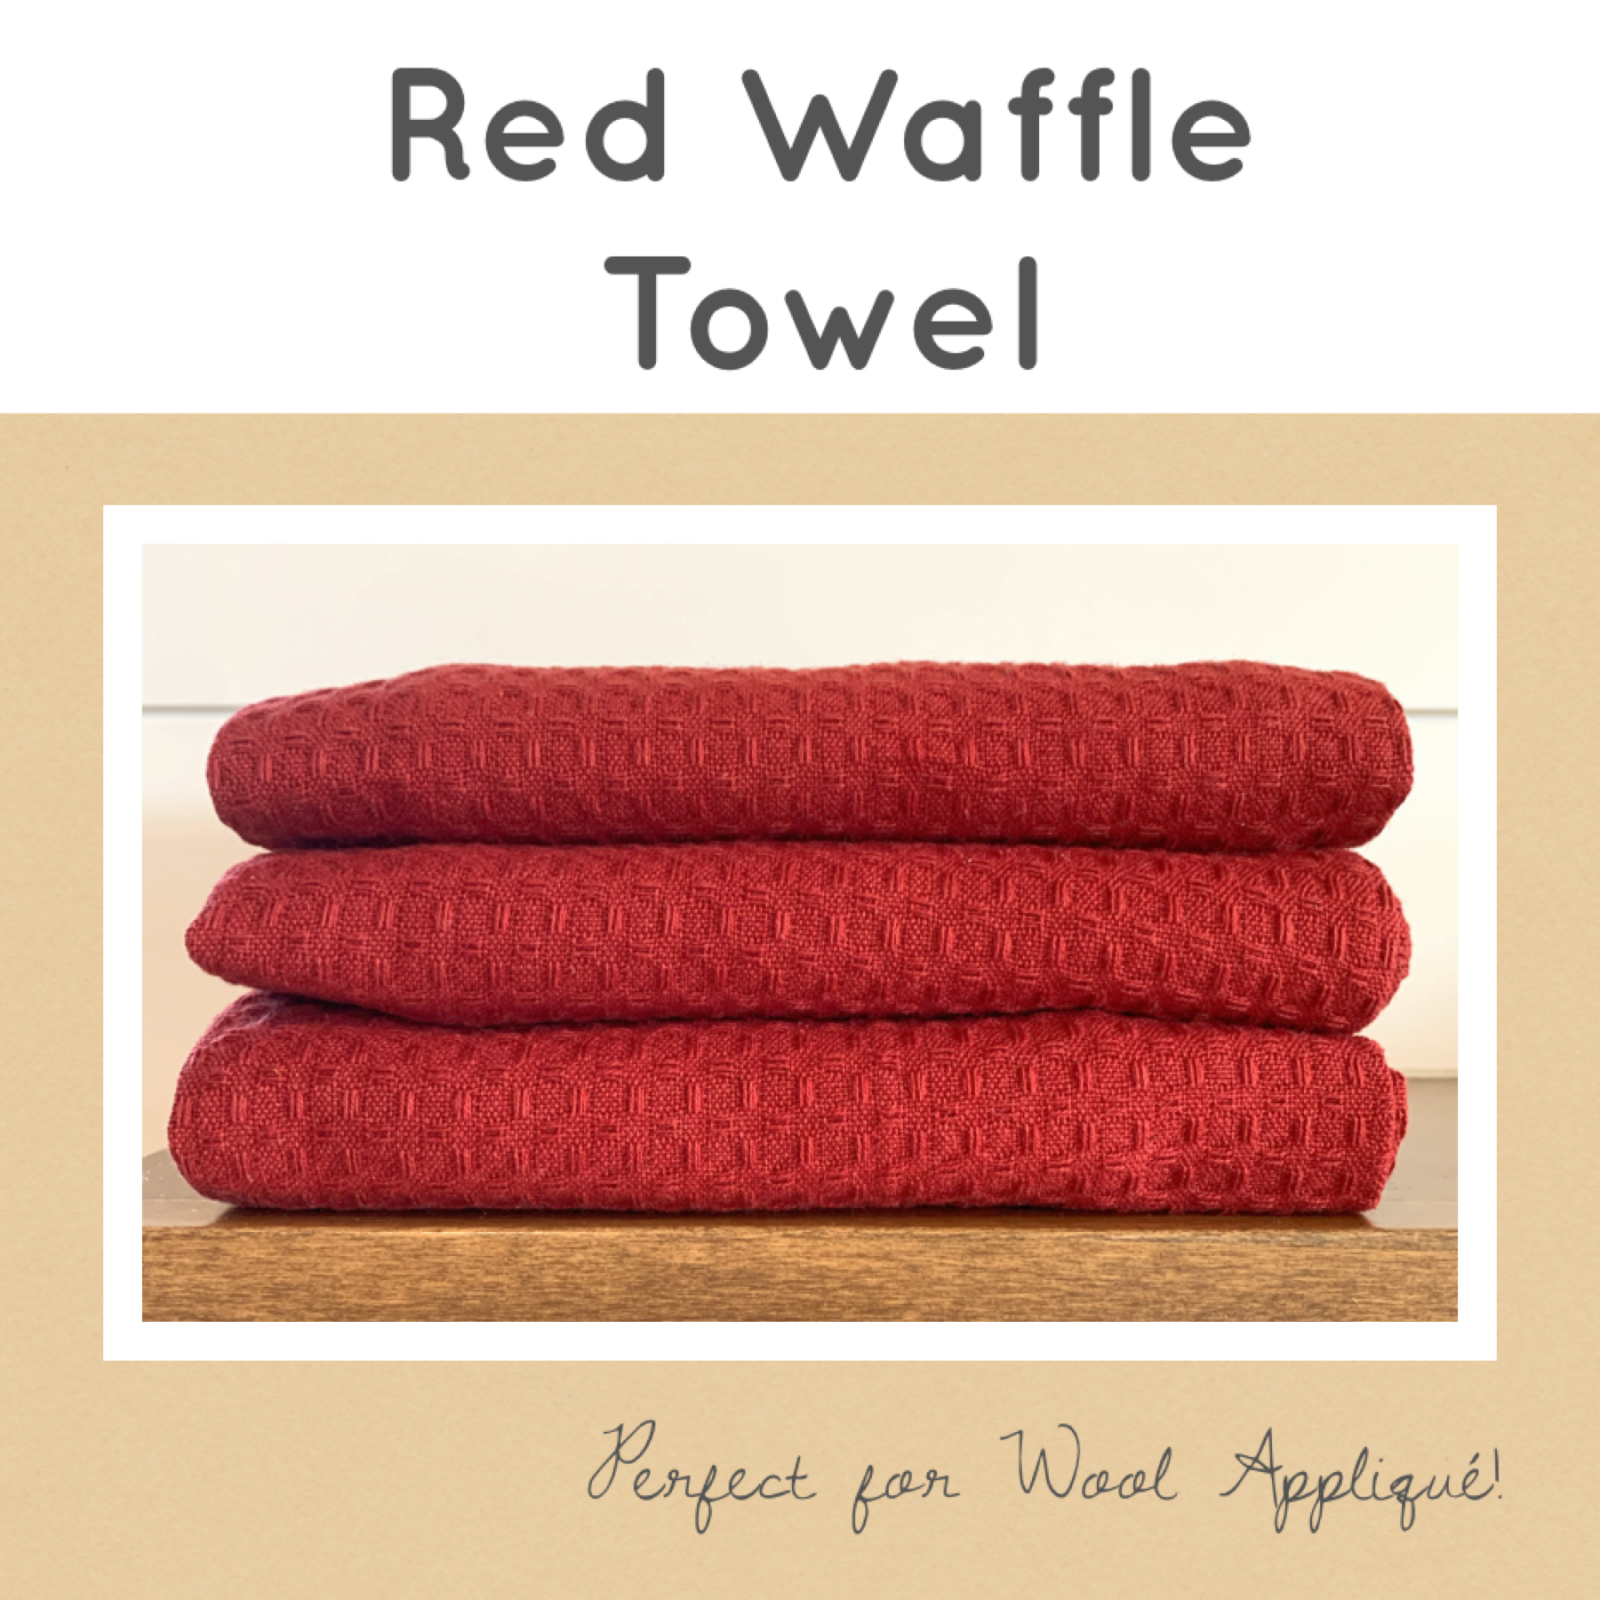 Red Waffle Towel